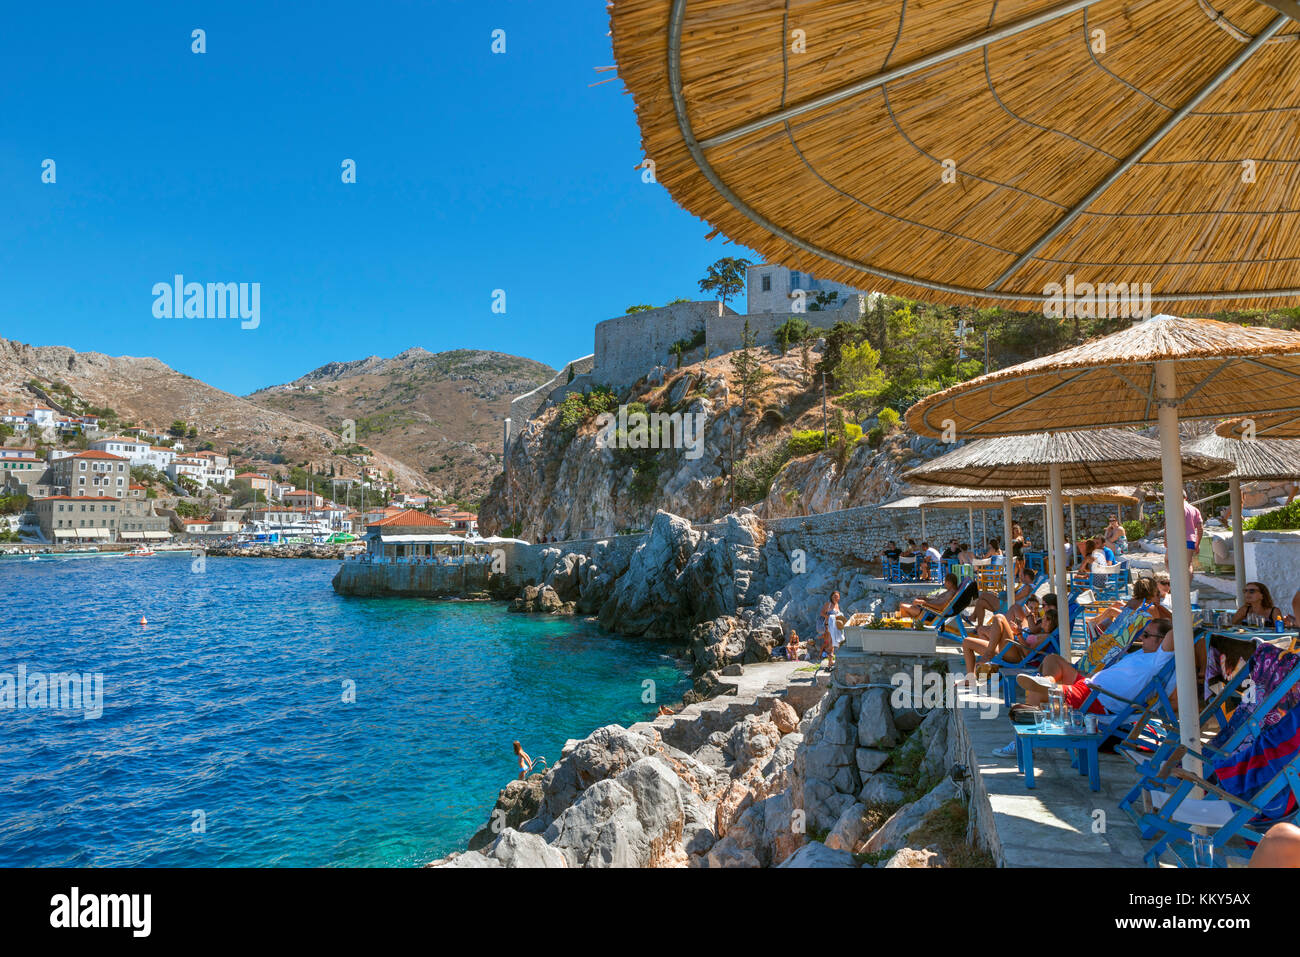 Seafront bar and bathing area just outside Hydra Town, Hydra, Greece - Stock Image